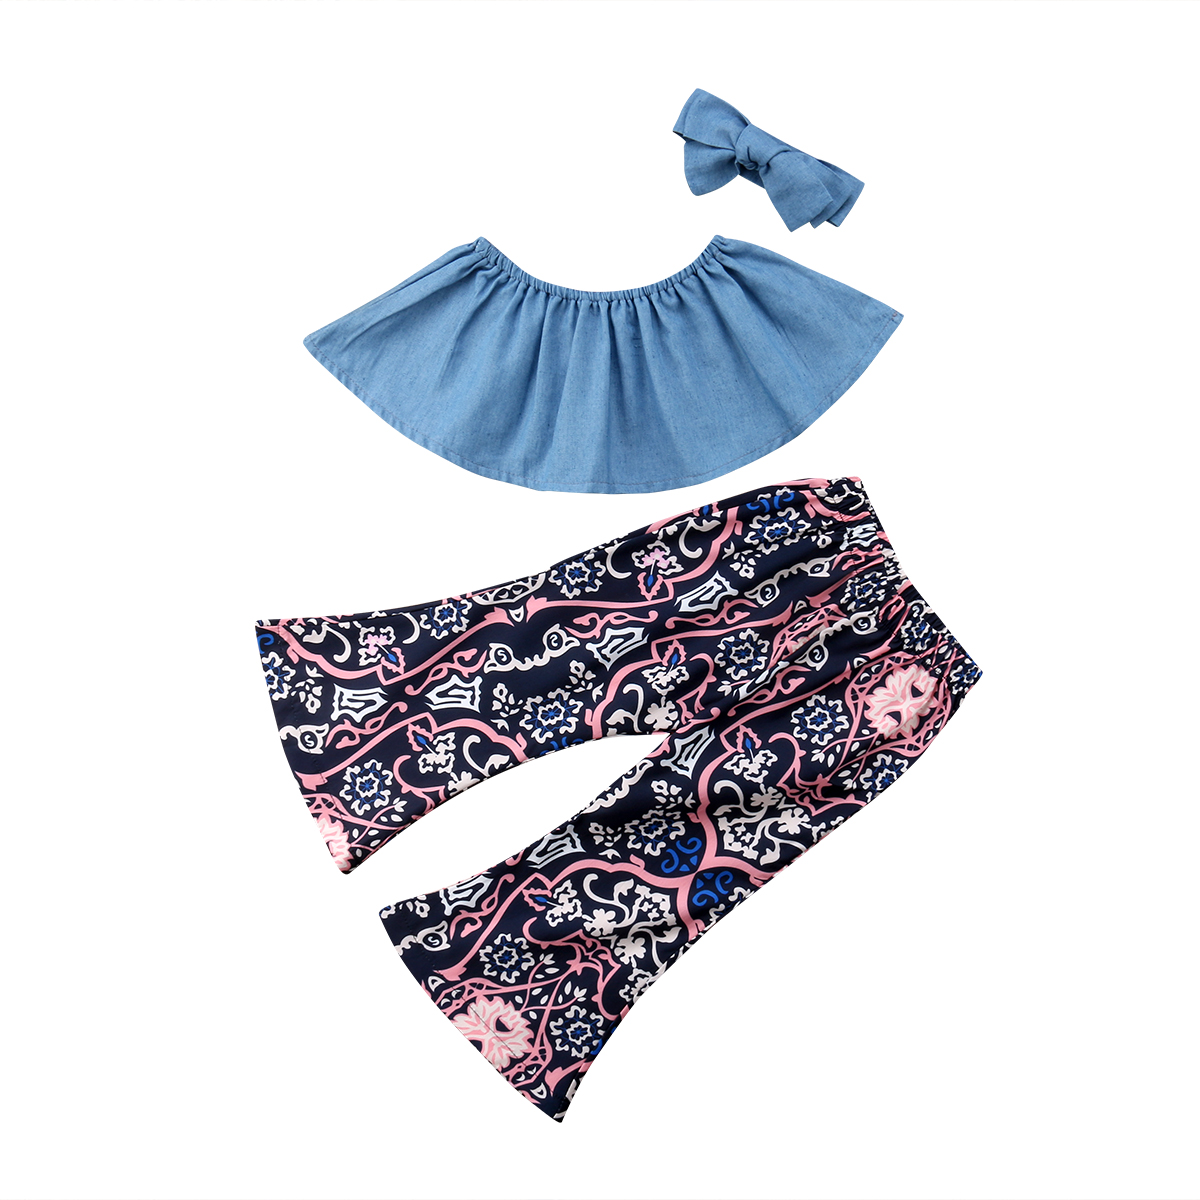 Kids Toddle Baby Girls Clothes Off Shoulder Denim Top Shirt Floarl Flare Pants Bell Bottoms Headband 3PCS Outfit Baby Girl 9M-4T